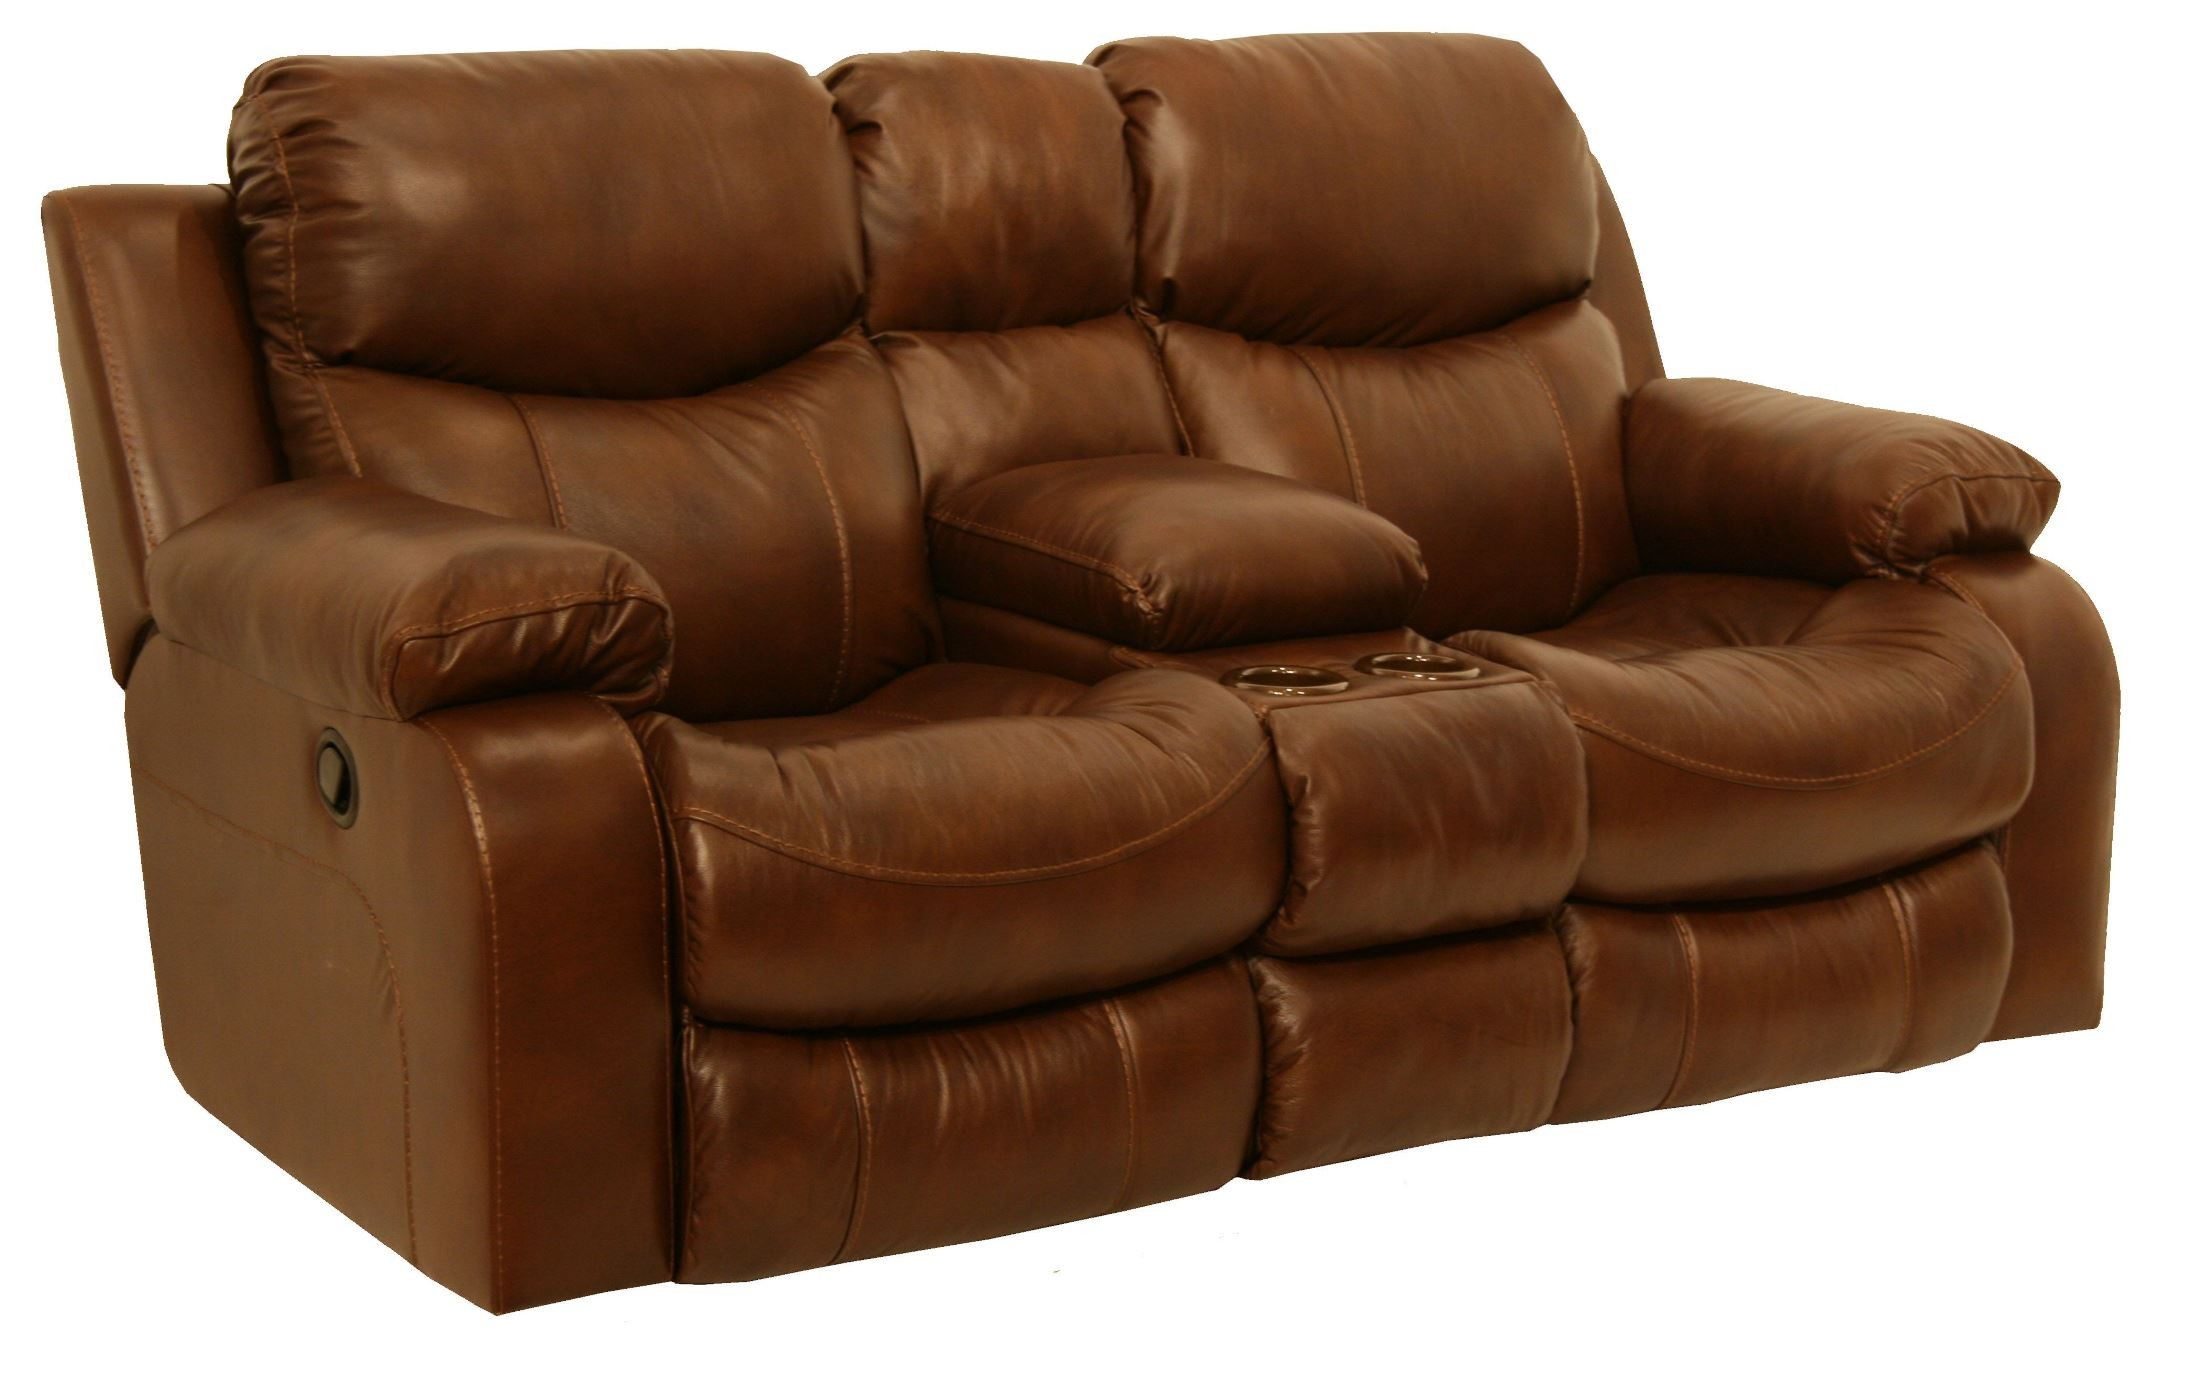 Dallas Tobacco Reclining Loveseat With Console From Catnapper 4959120000000000 Coleman Furniture